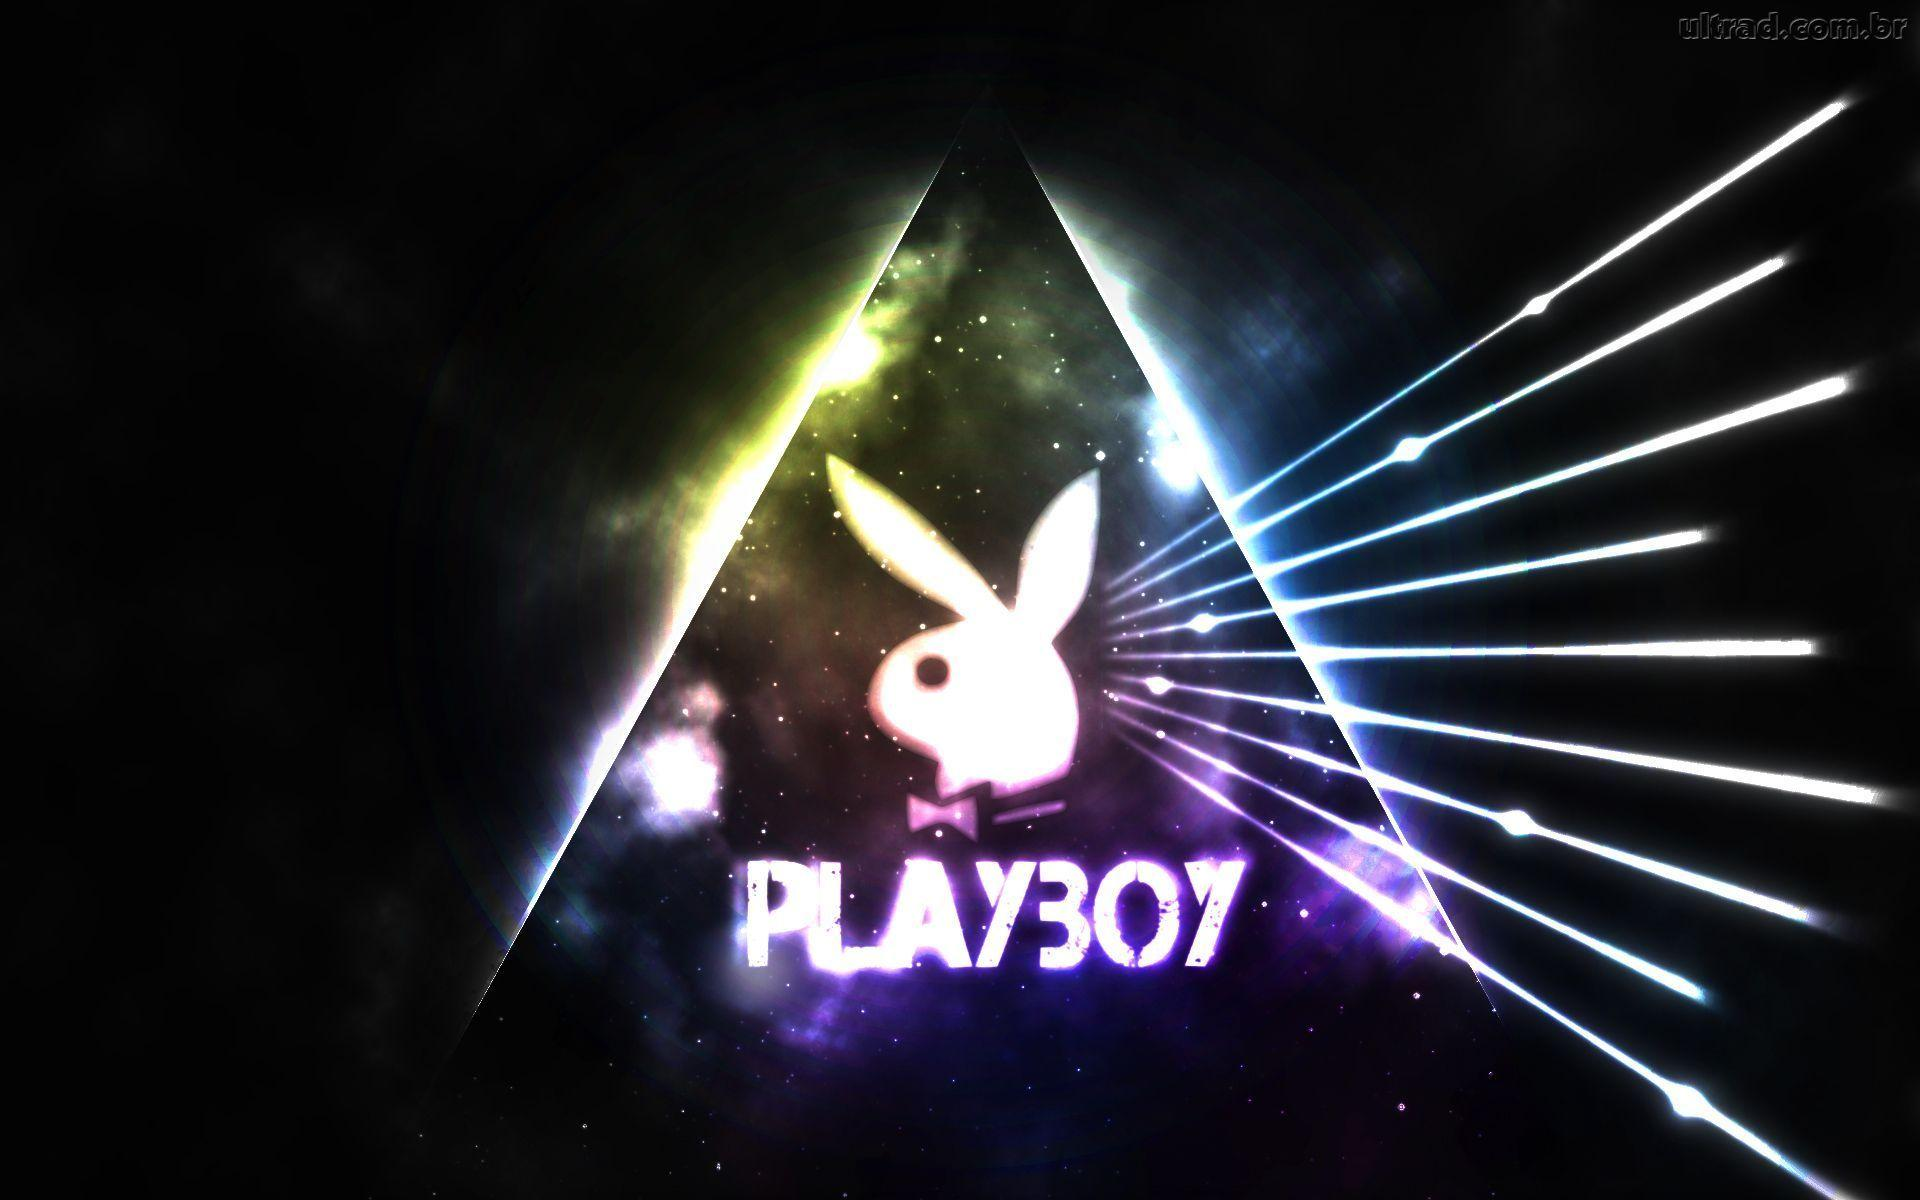 Play Boy Backgrounds - Wallpaper Cave